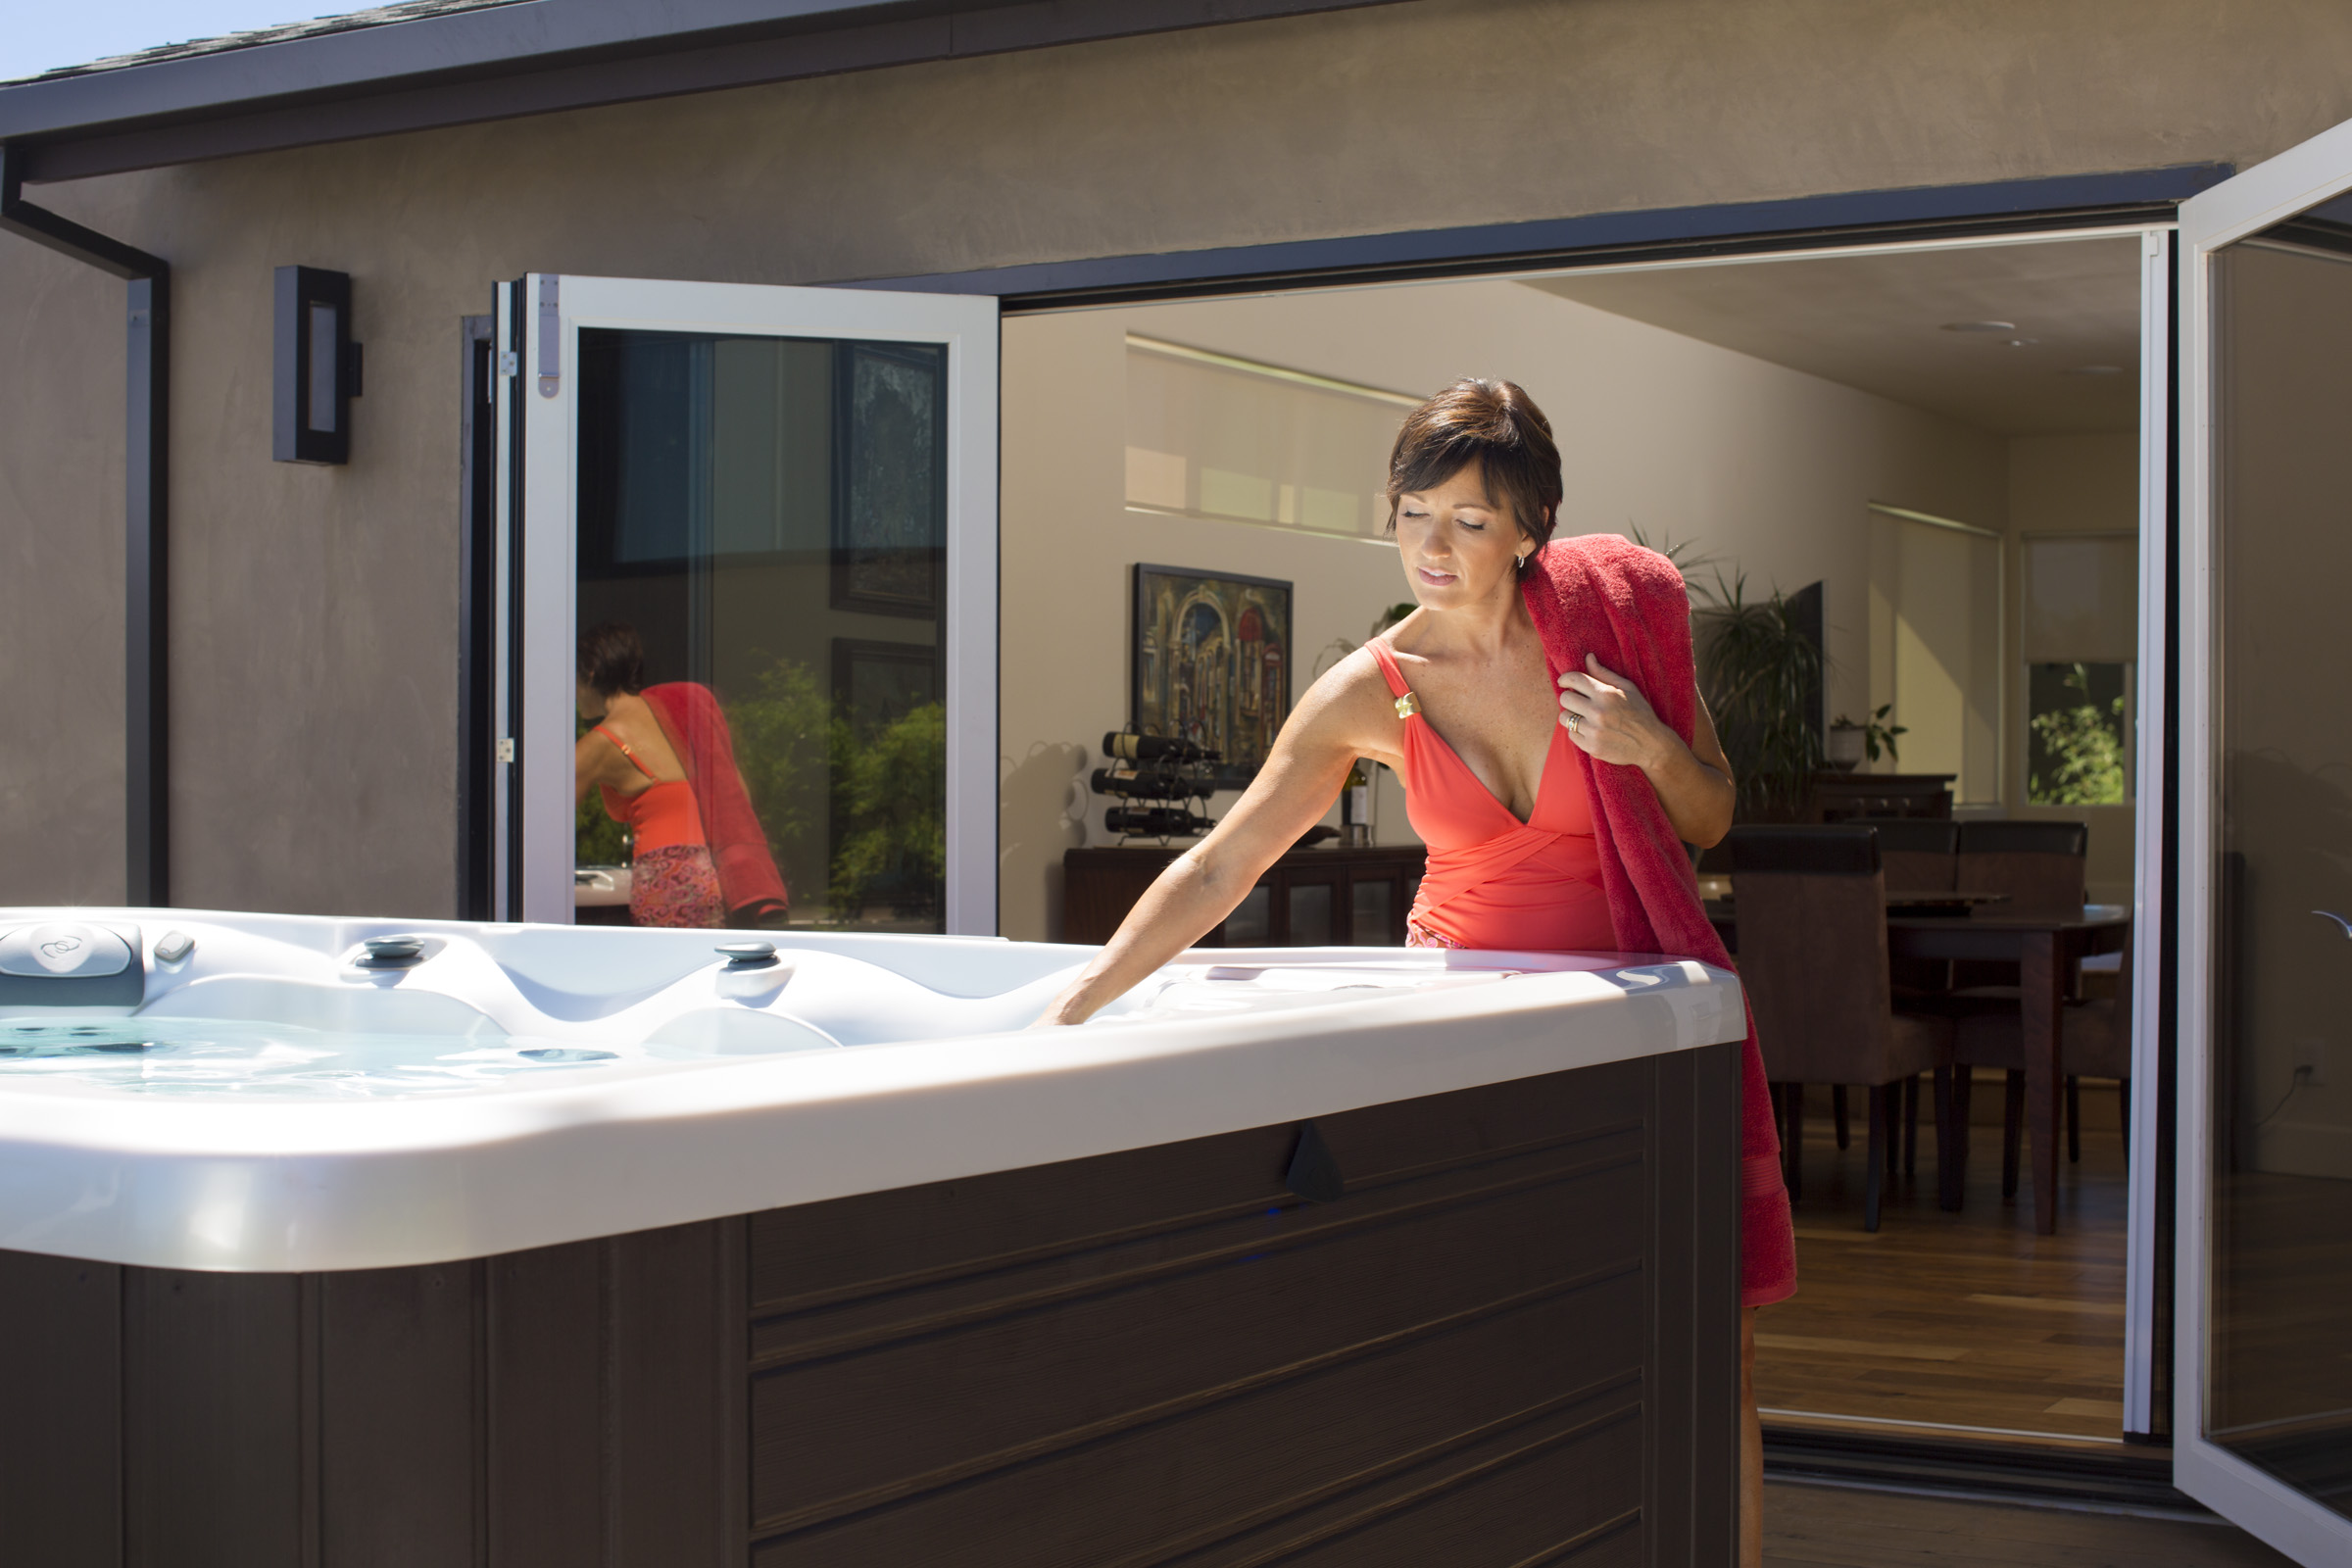 recycle your hot tub grey water to save money and water resources